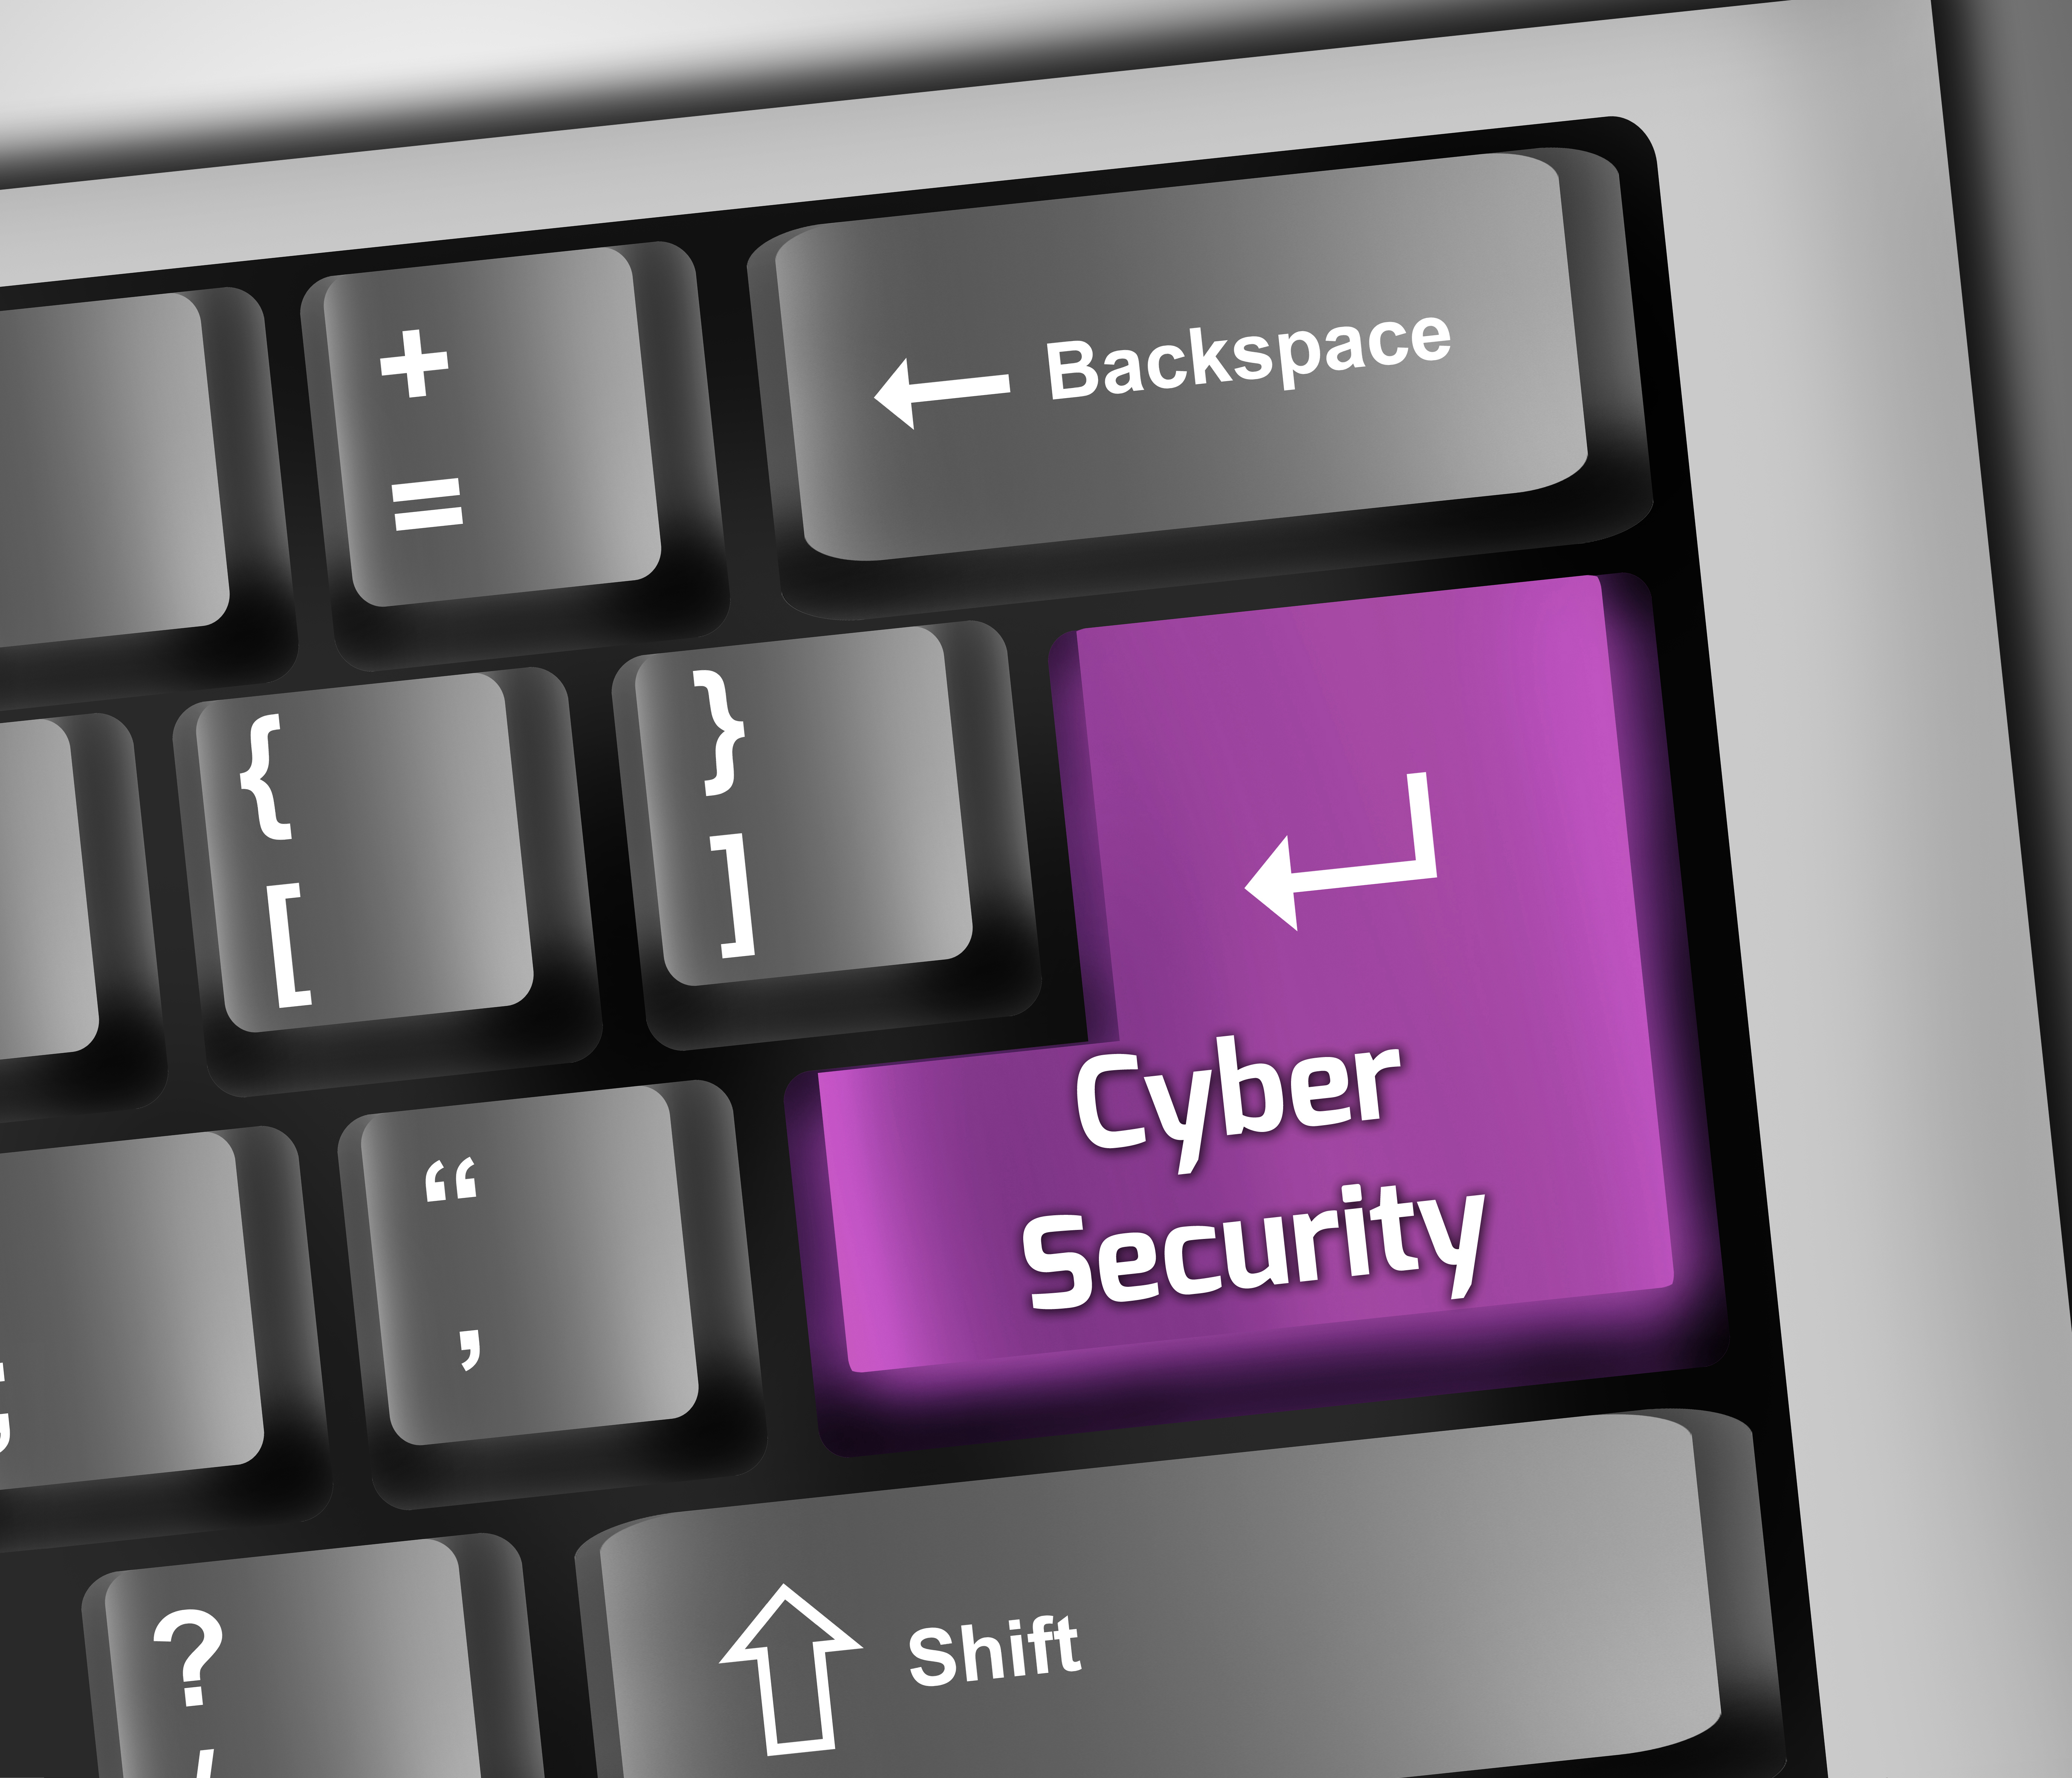 Cybersecurity Not Stand-Alone Issue in Trump v. Clinton